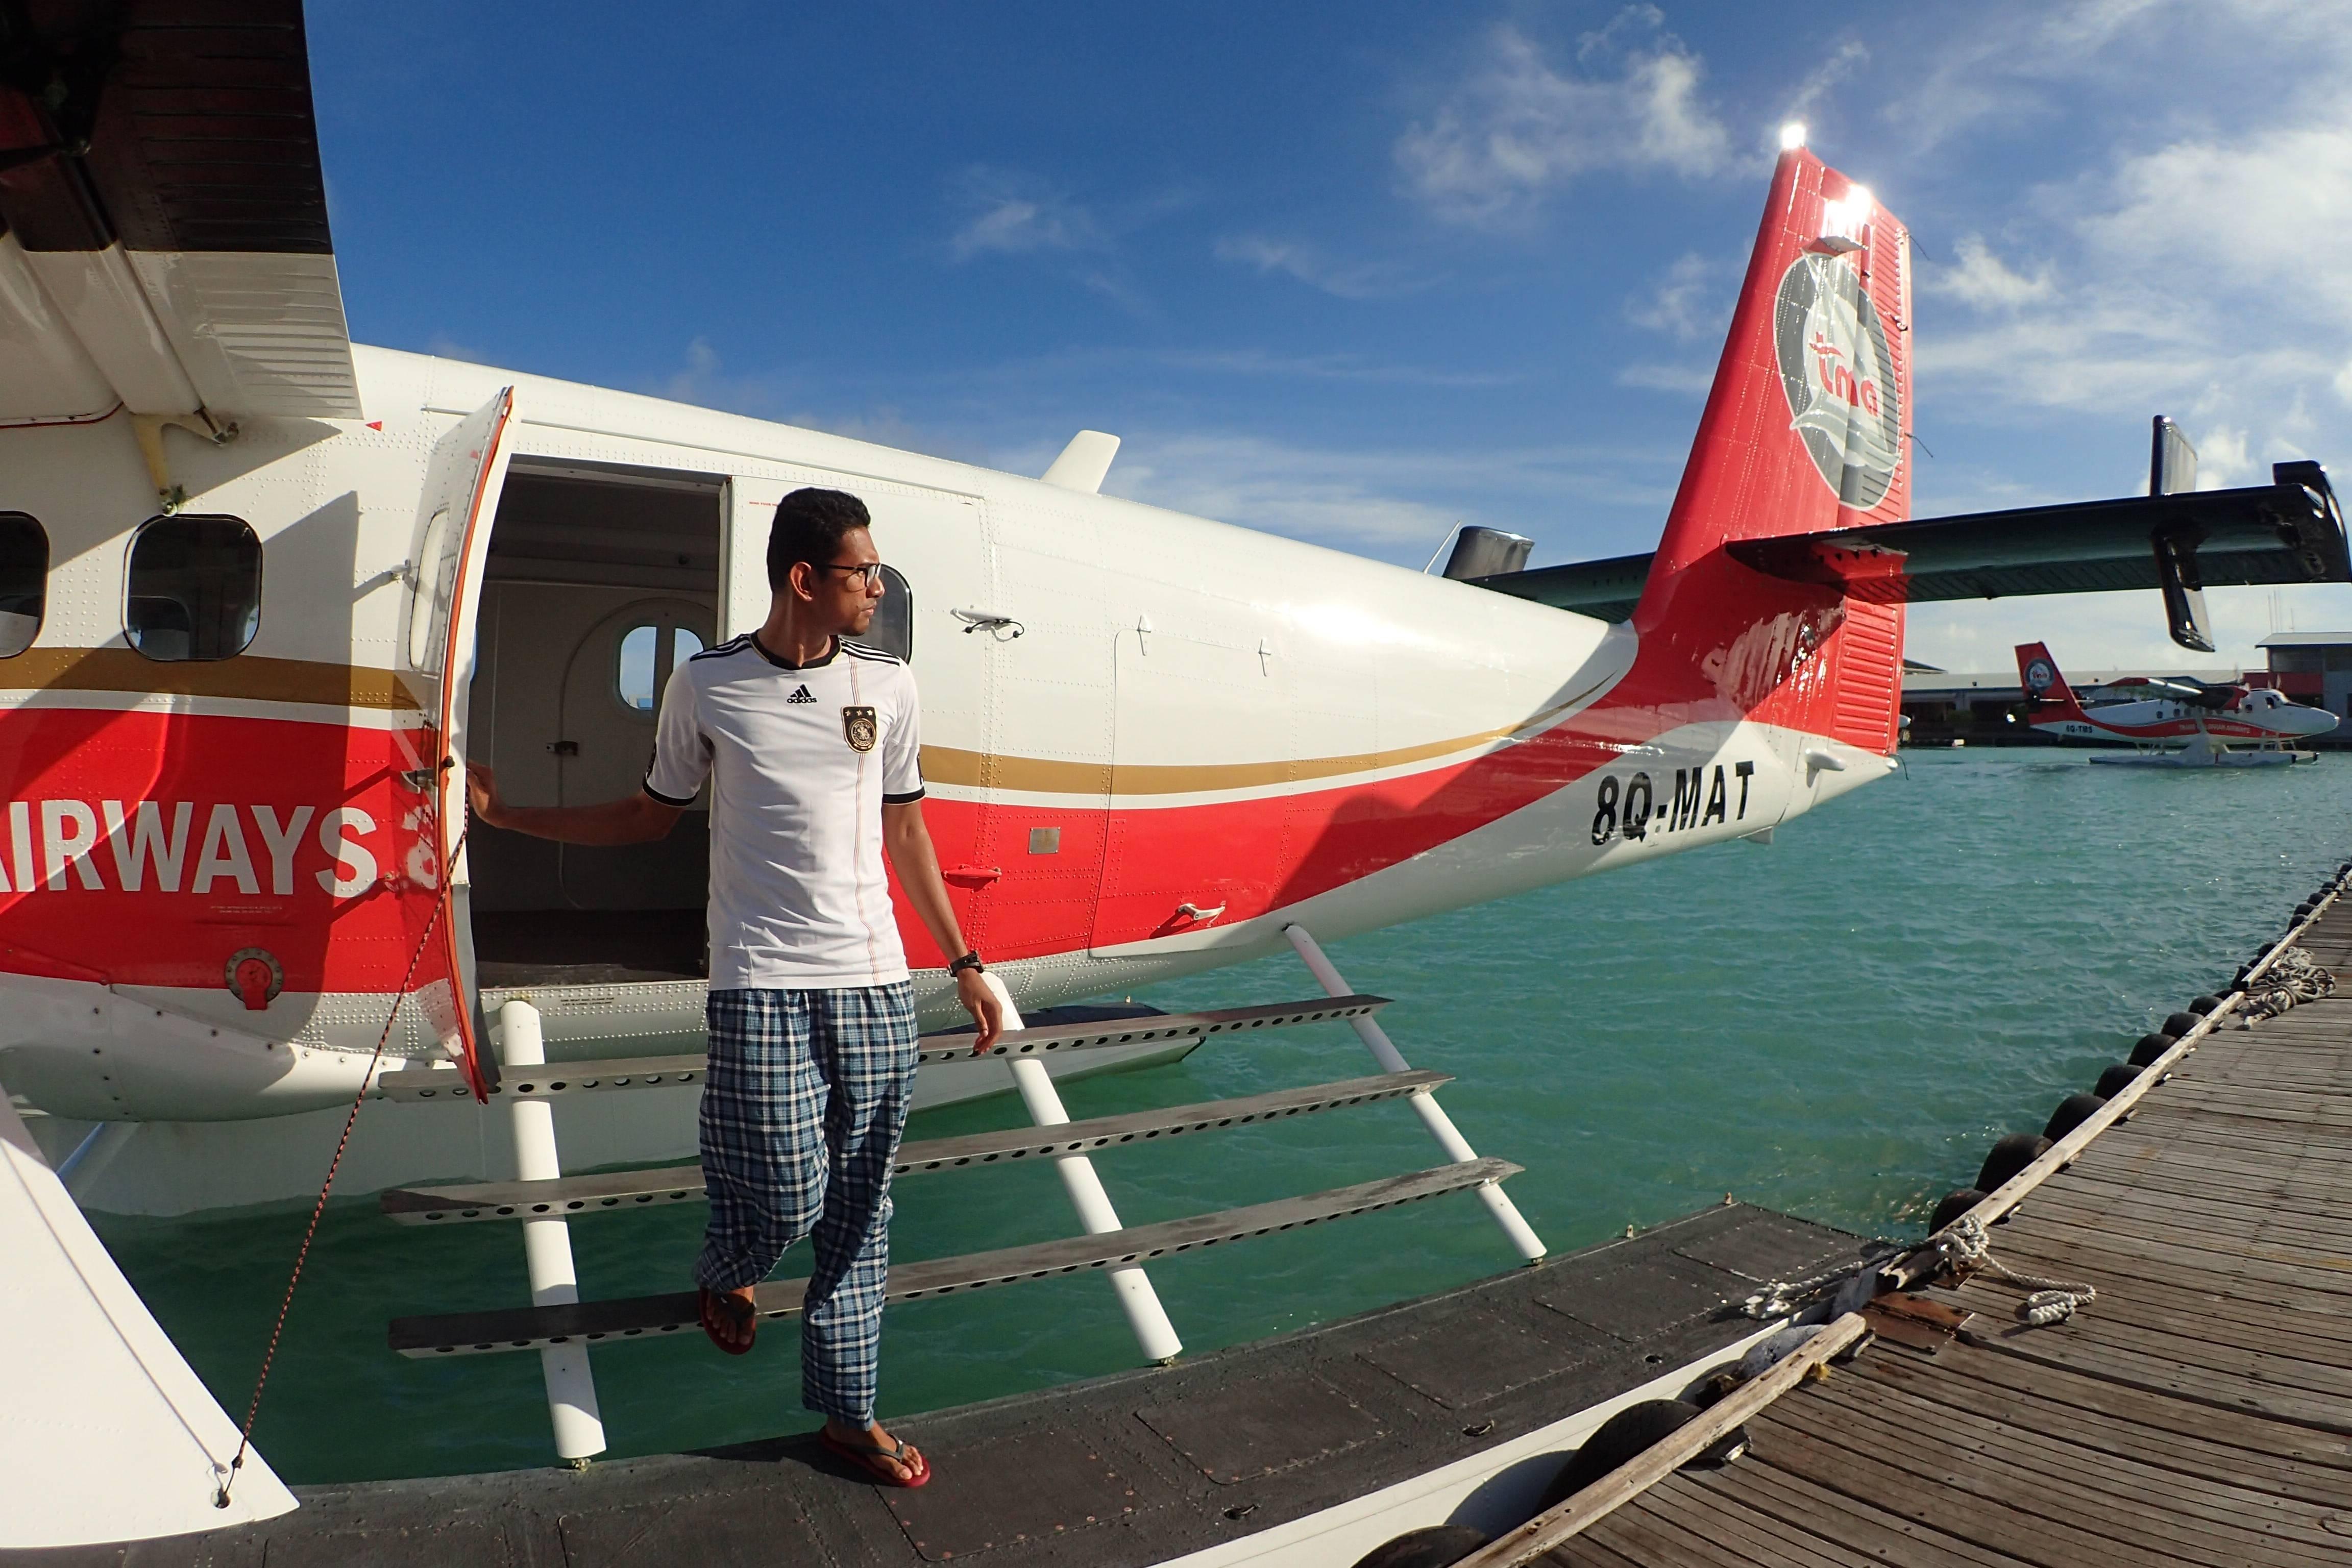 We got the chance to board the seaplane as well.